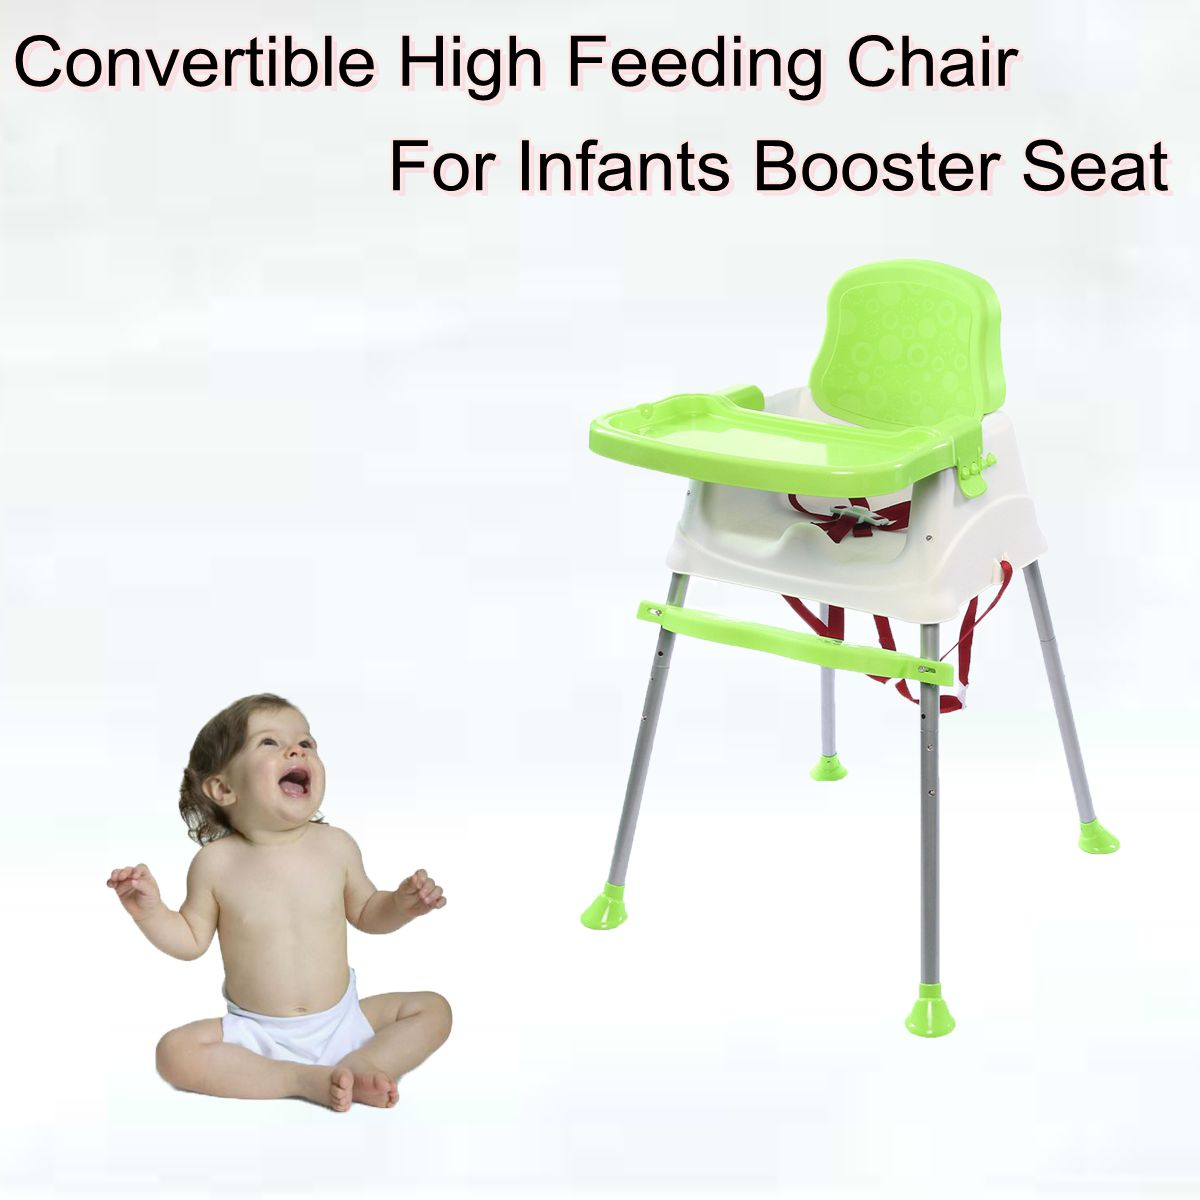 Baby Chair For Eating Baby Convertible High Feeding Chair For Infants Booster Seat, Green by